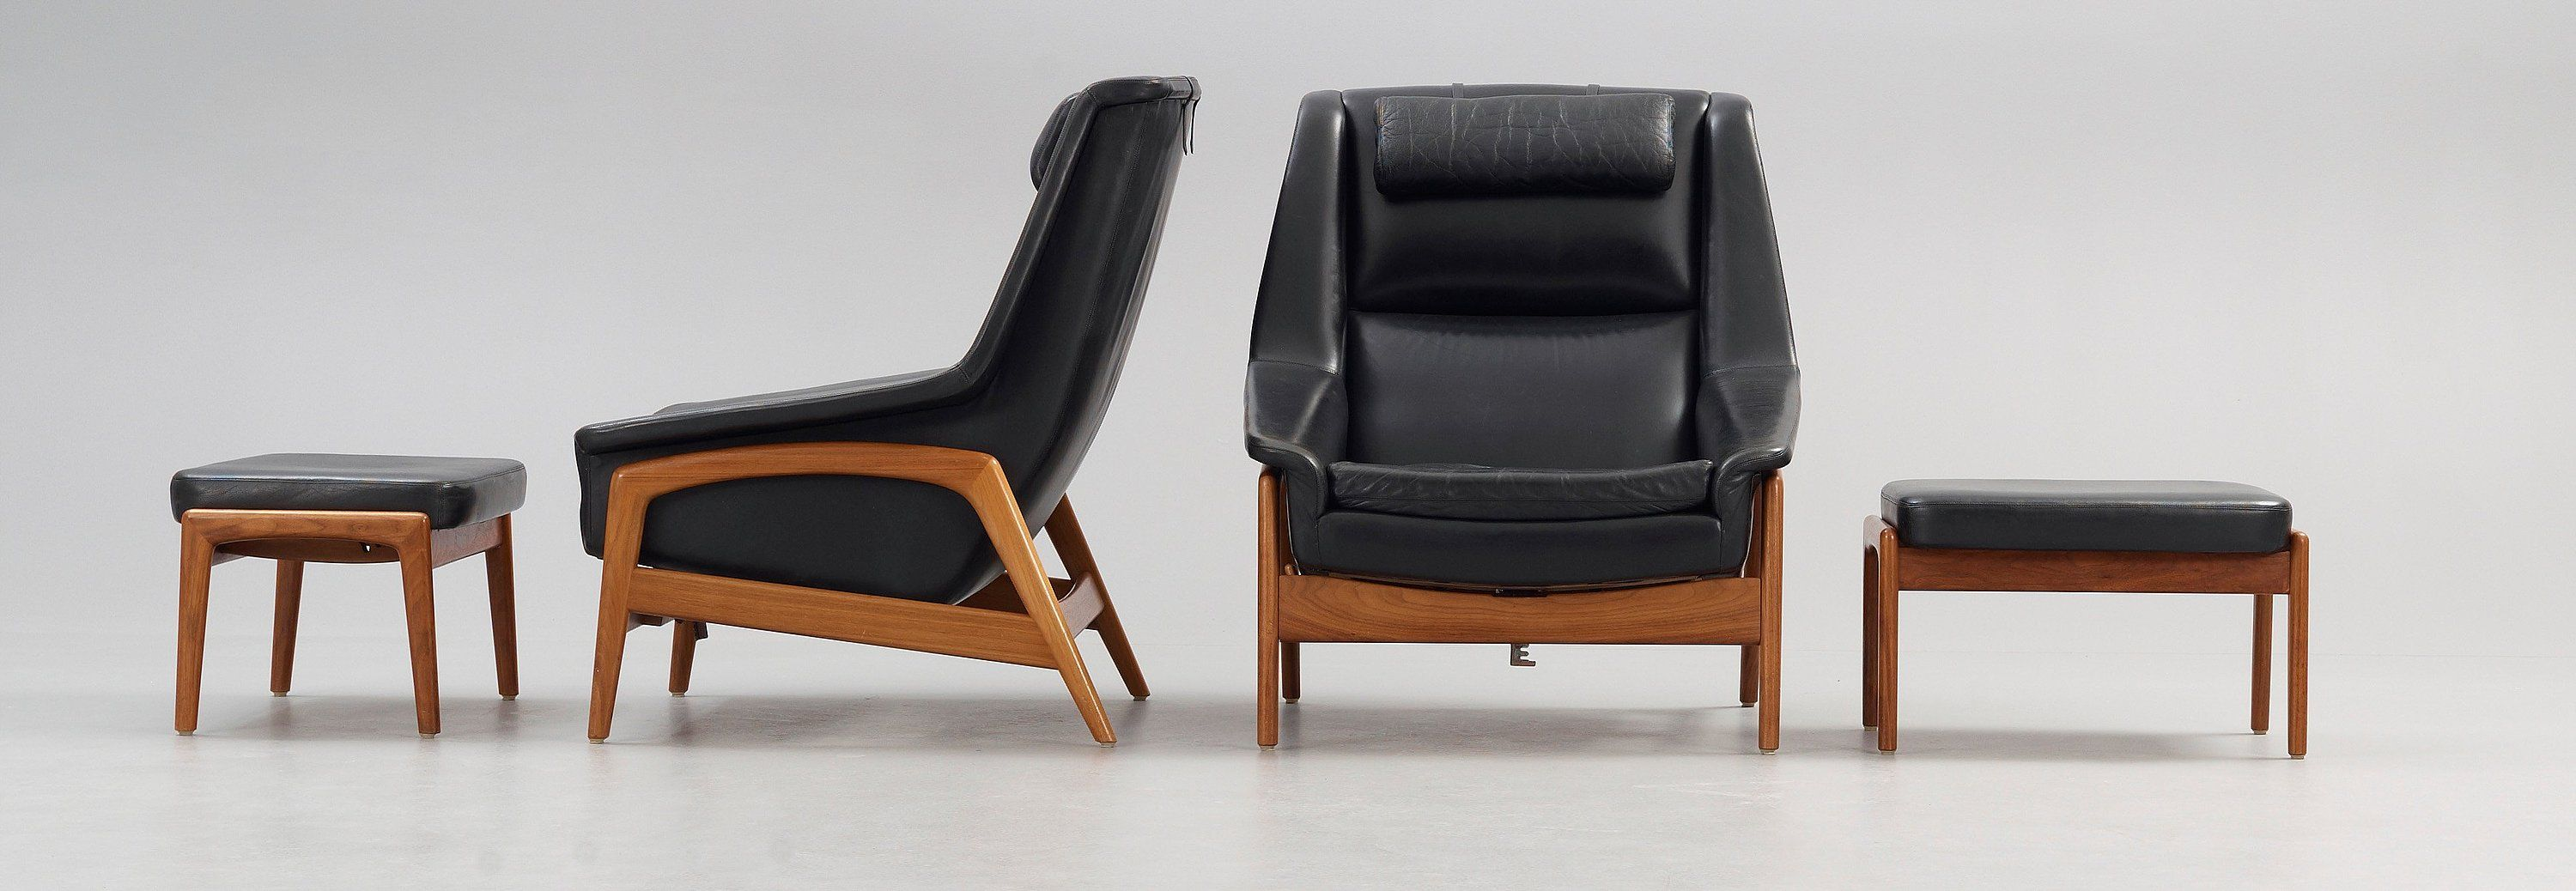 A Pair Of Folke Ohlsson Teak And Black Leather Lounge